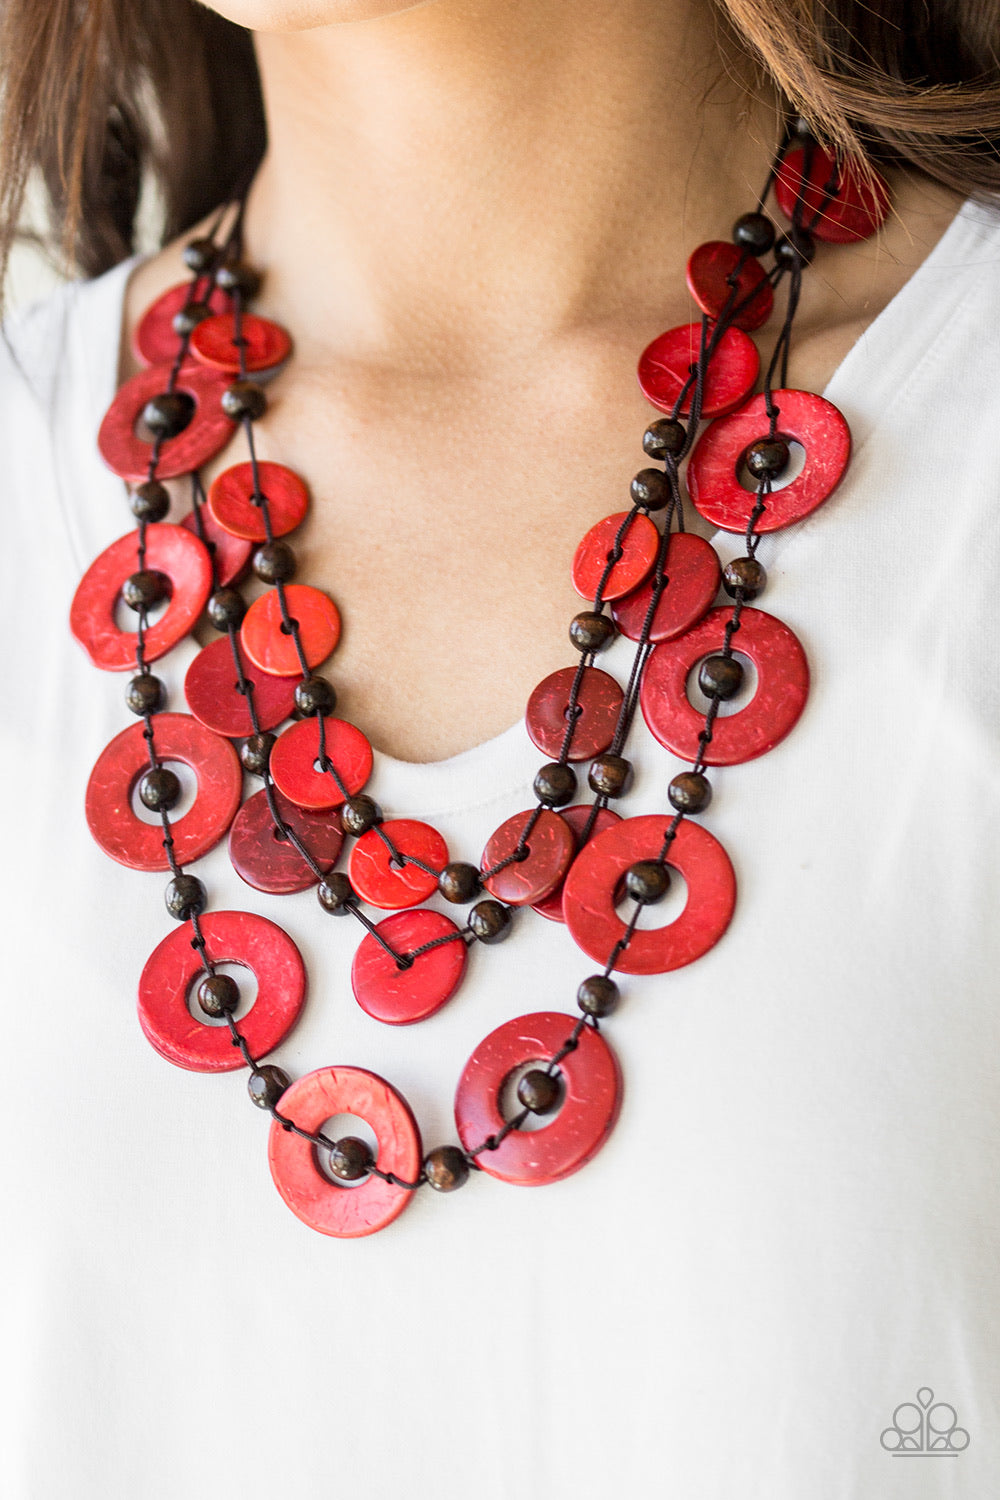 Catalina Coastin' - Red Wooden Necklace - Paparazzi Accessories